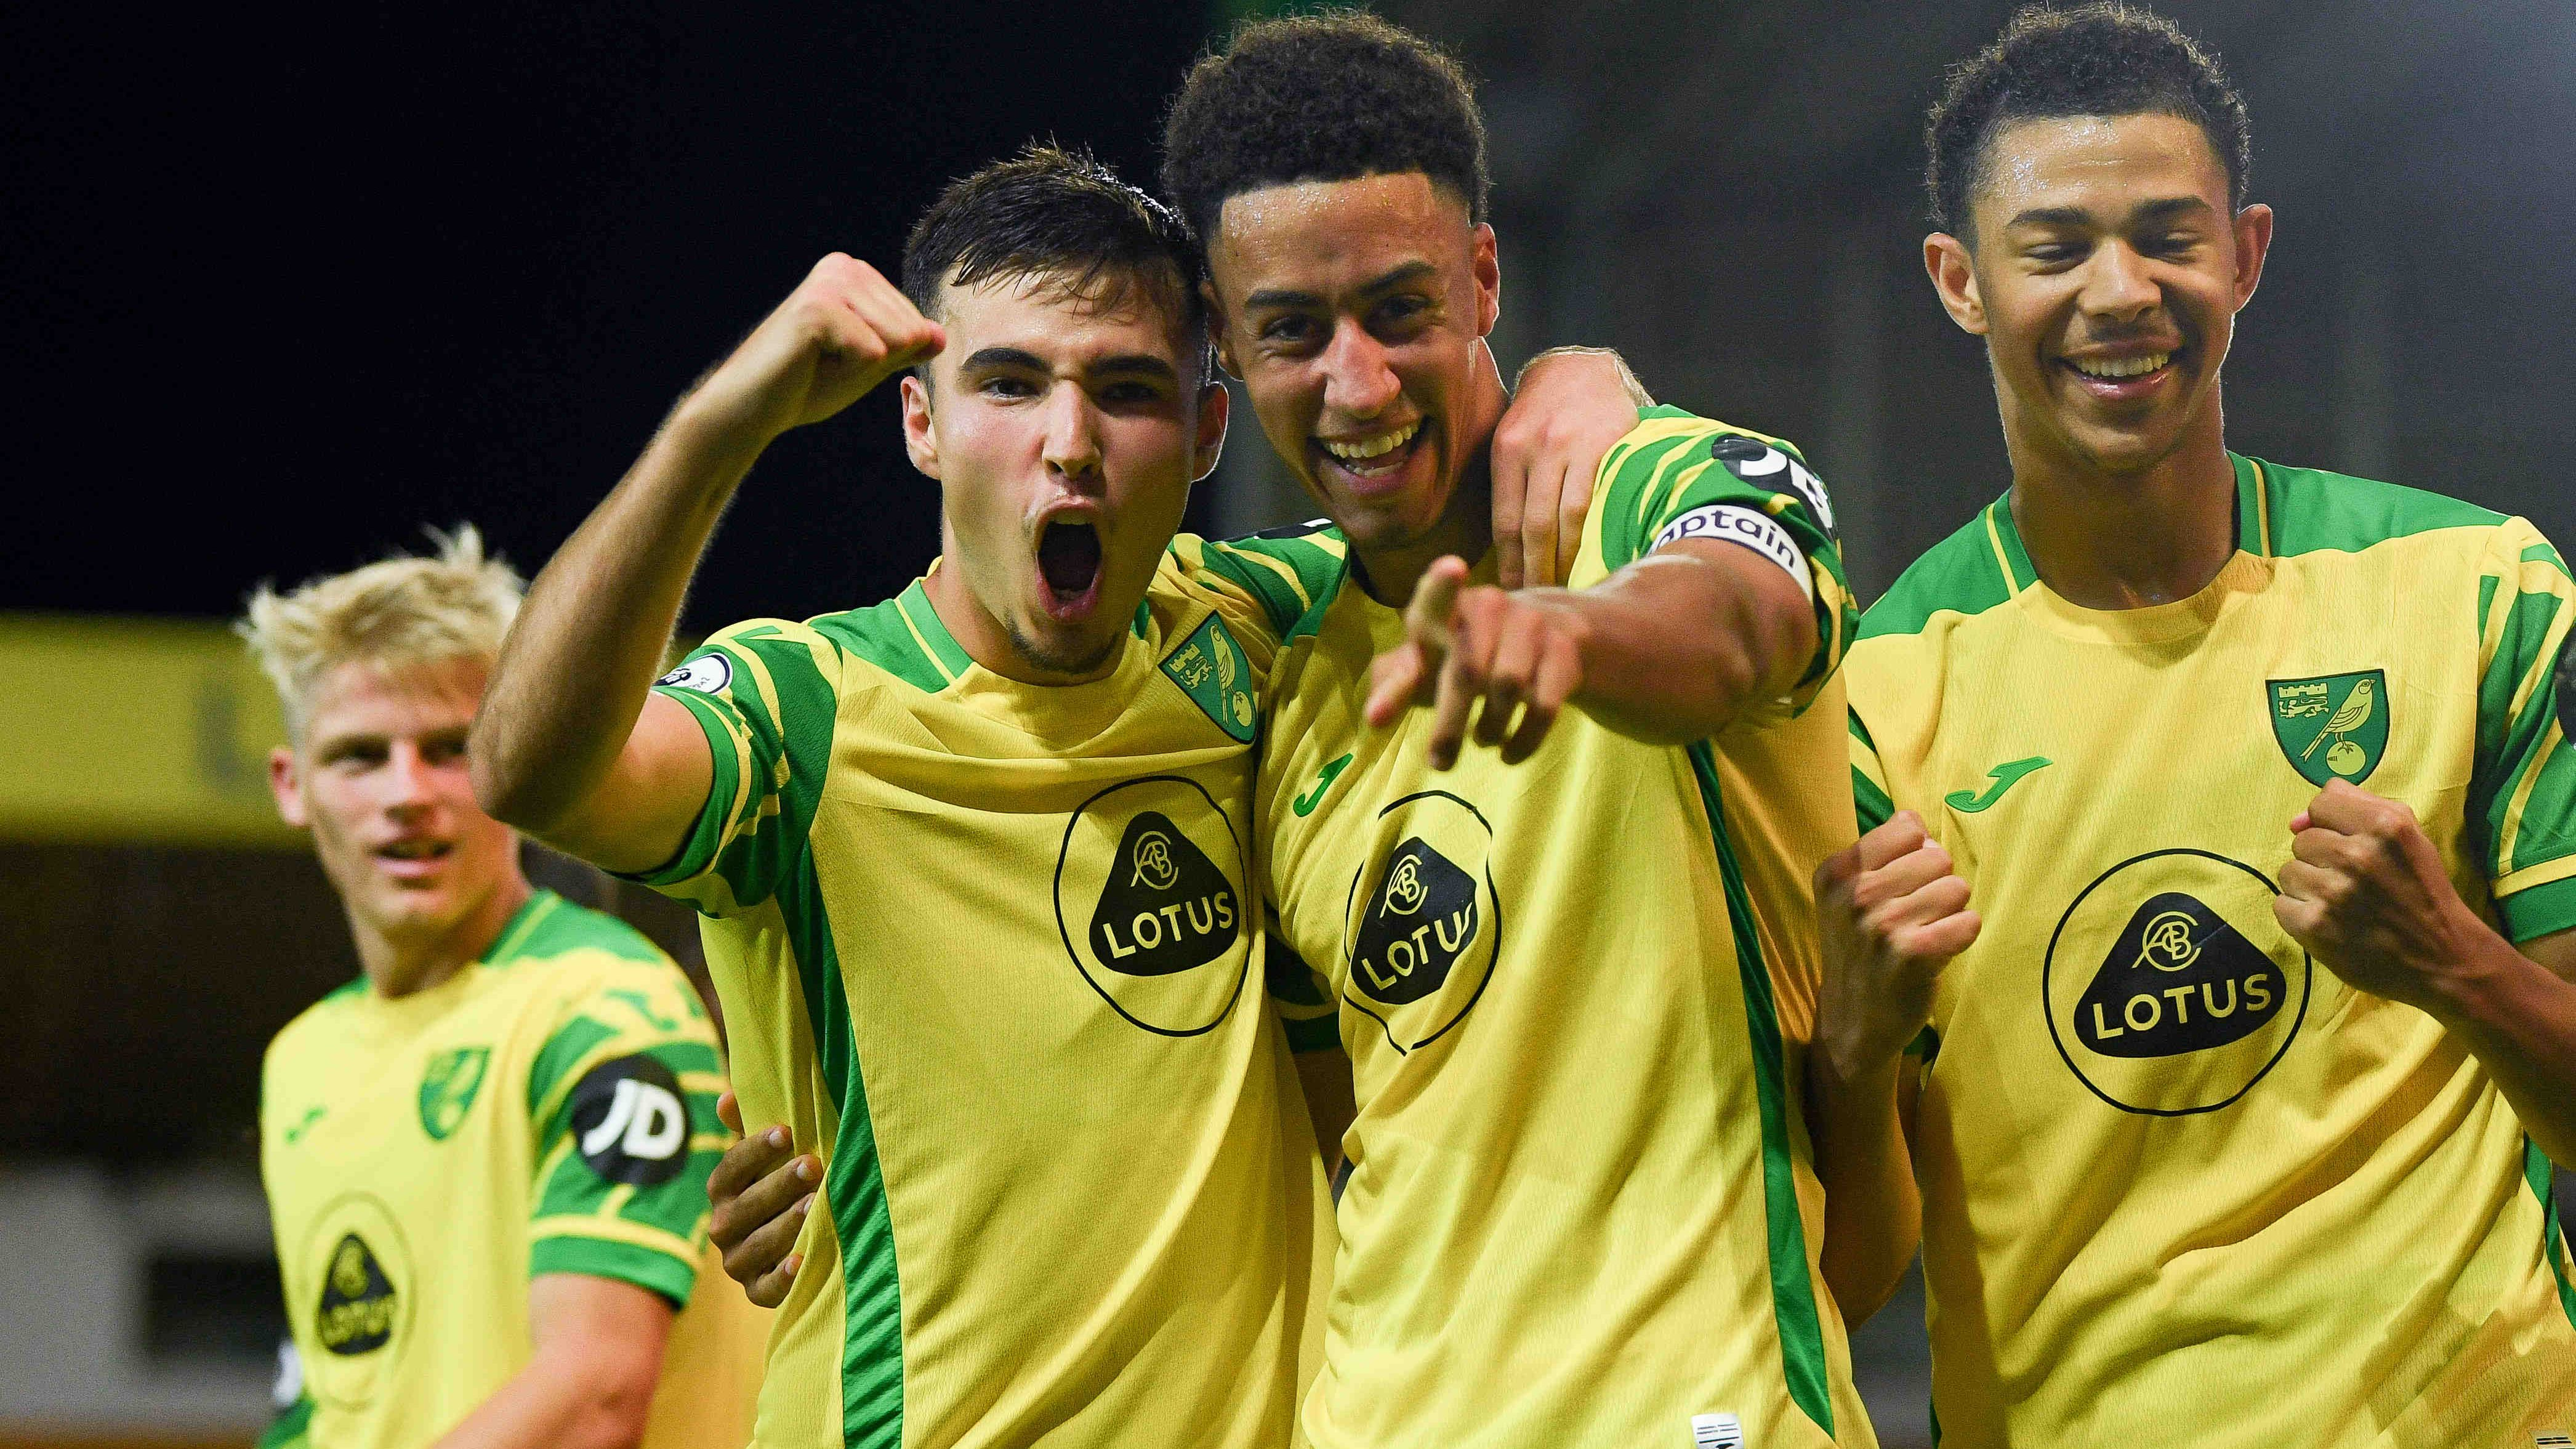 under-23s-set-for-pl2-double-header-at-the-walks